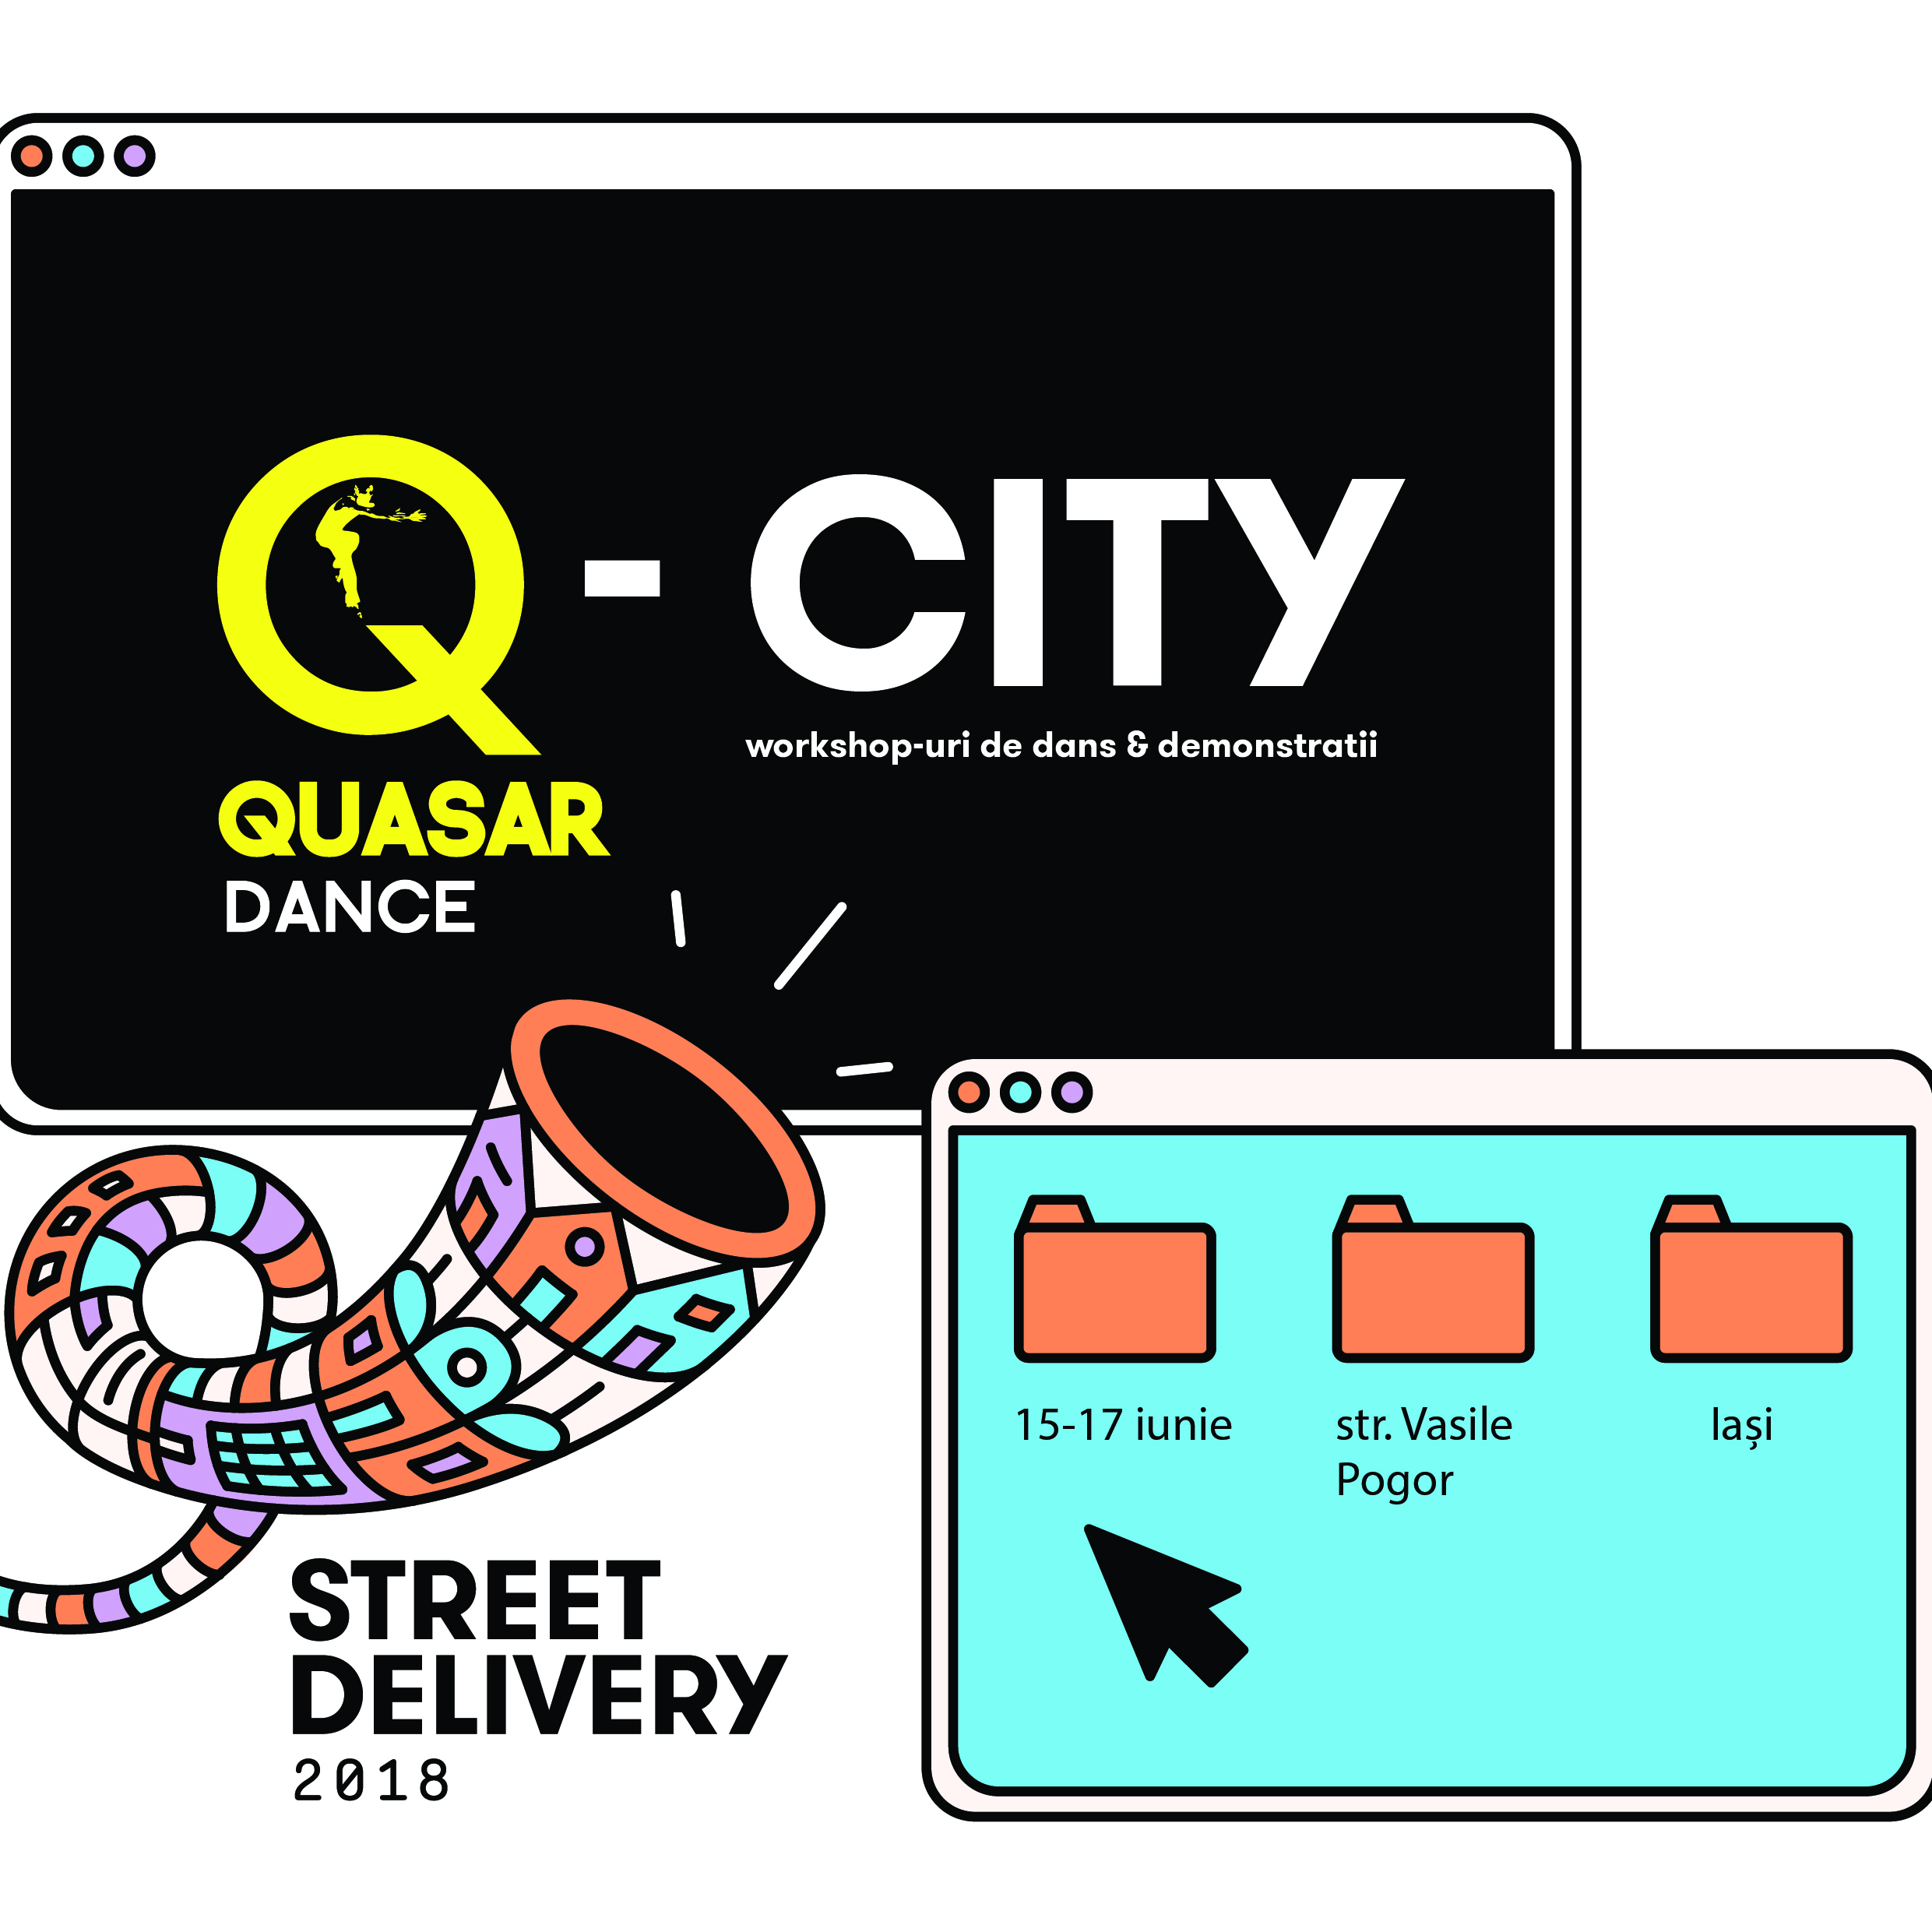 Q-City at Street Delivery